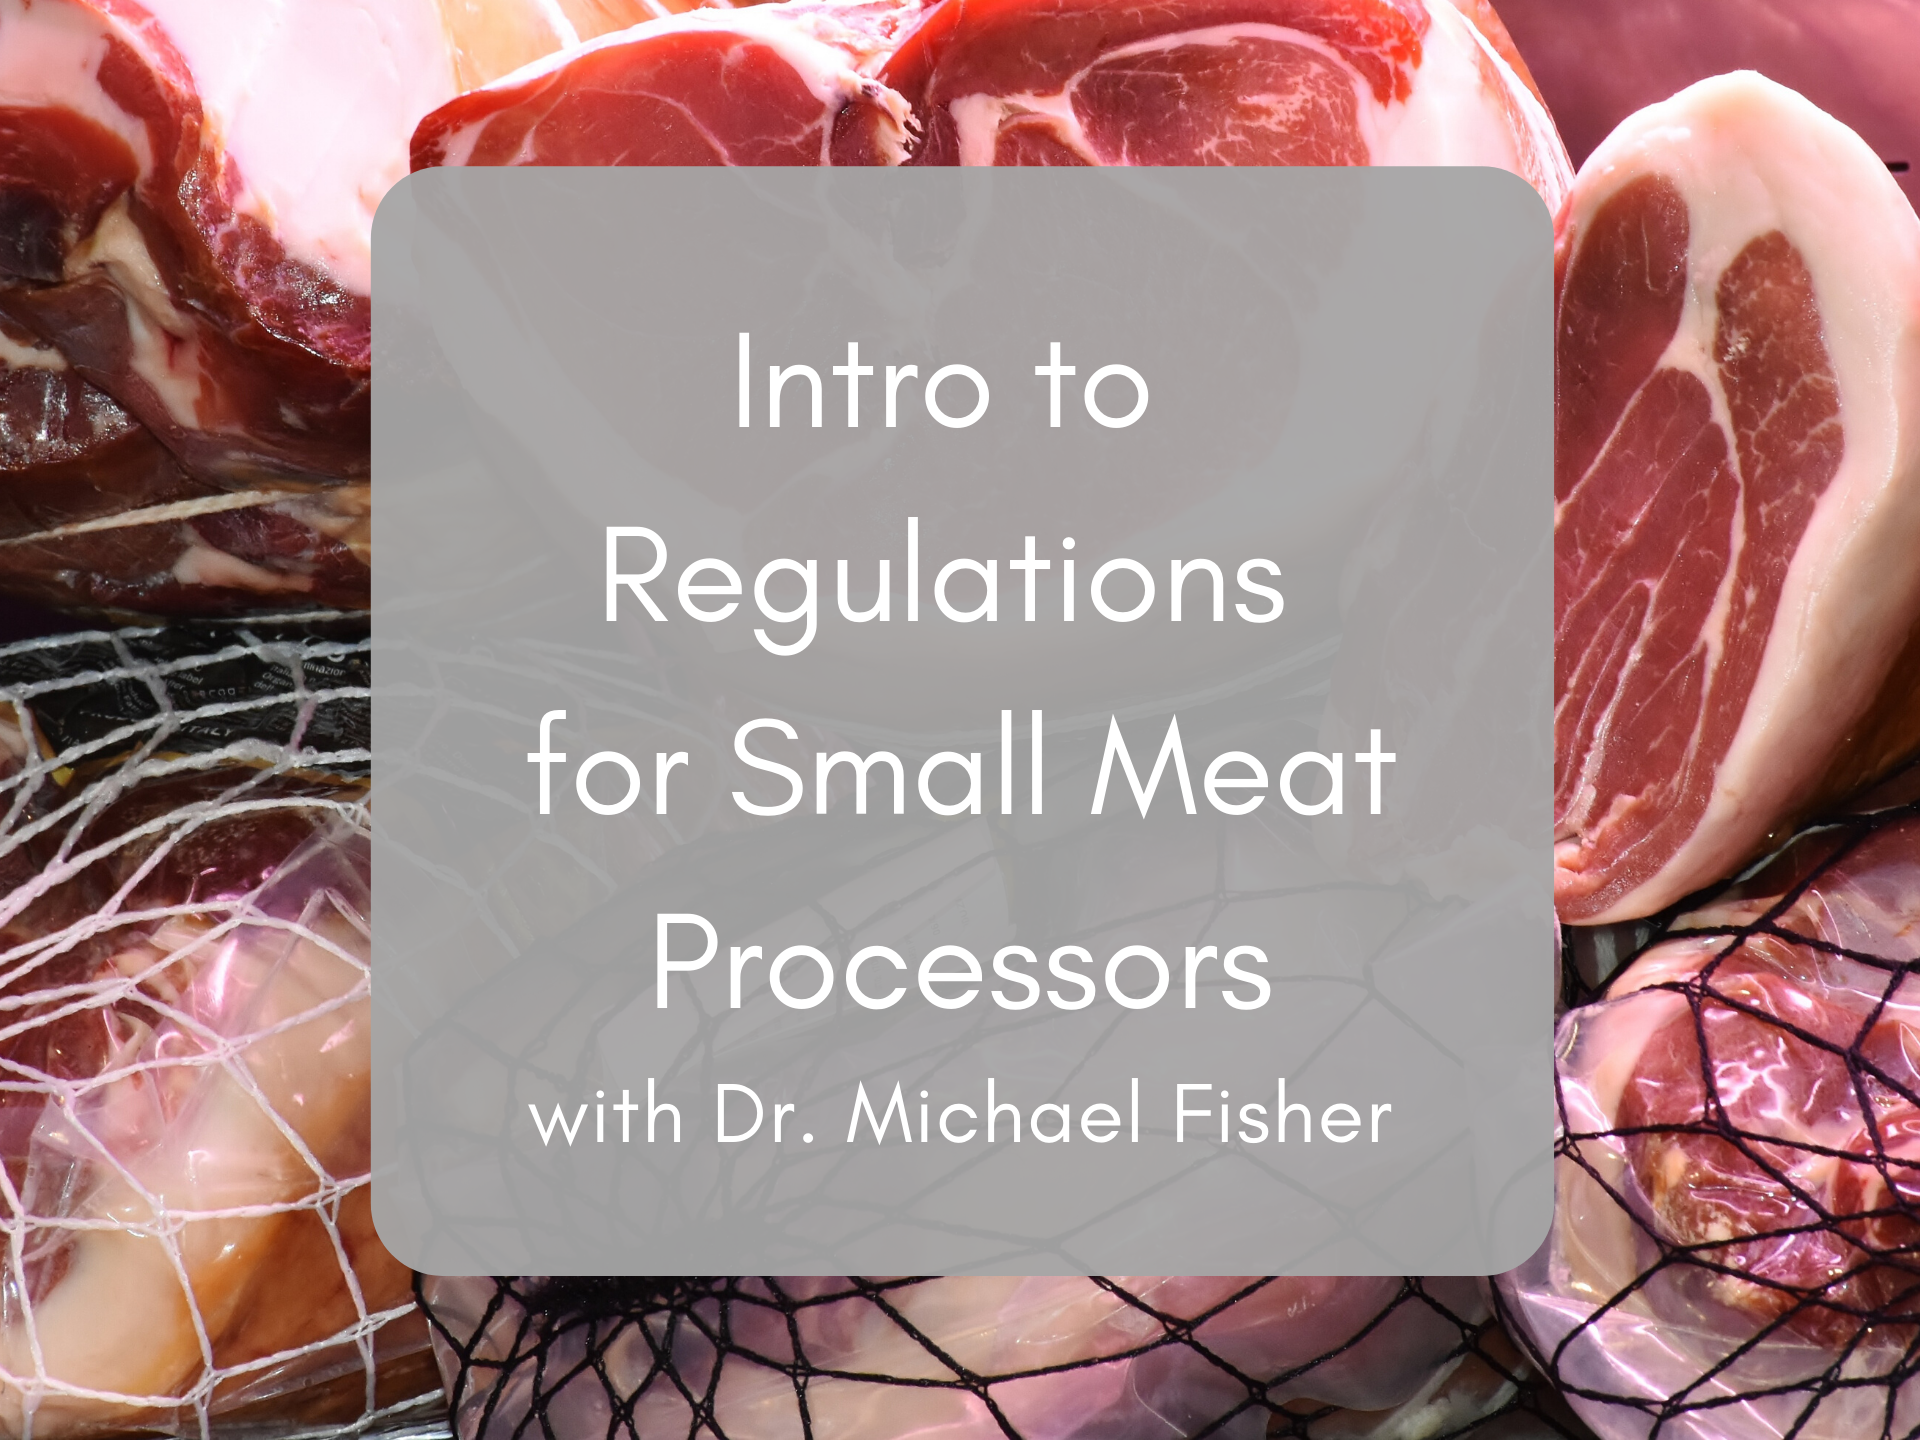 M. Fisher Intro to Regs for Small Meat Processors